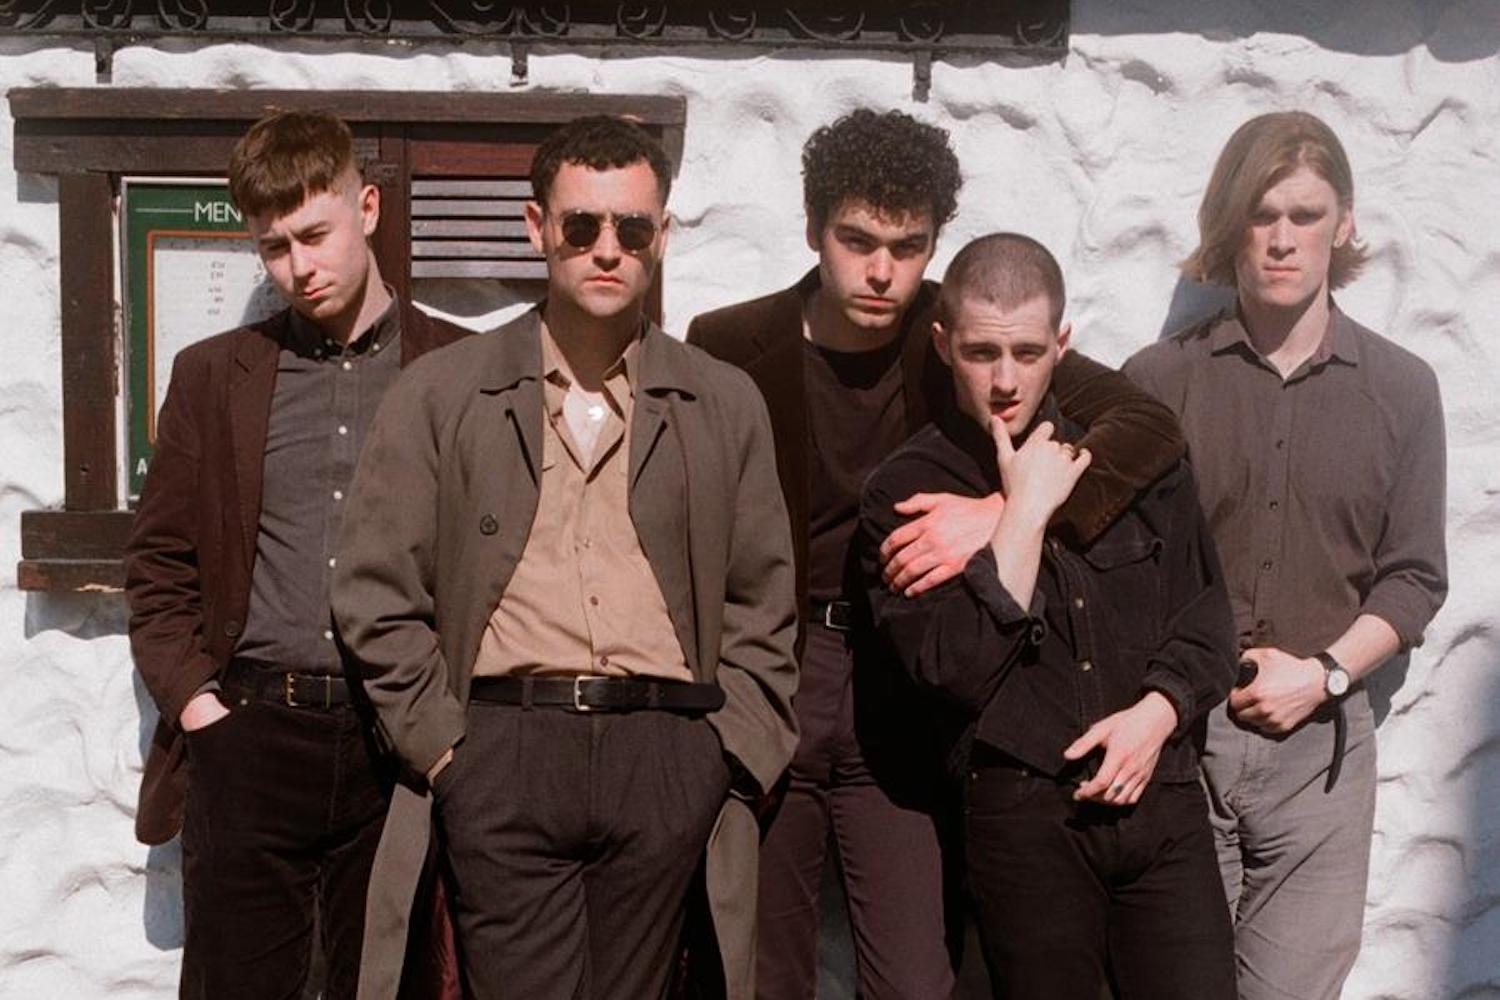 The Murder Capital release palpable new track 'Don't Cling To Life' - listen